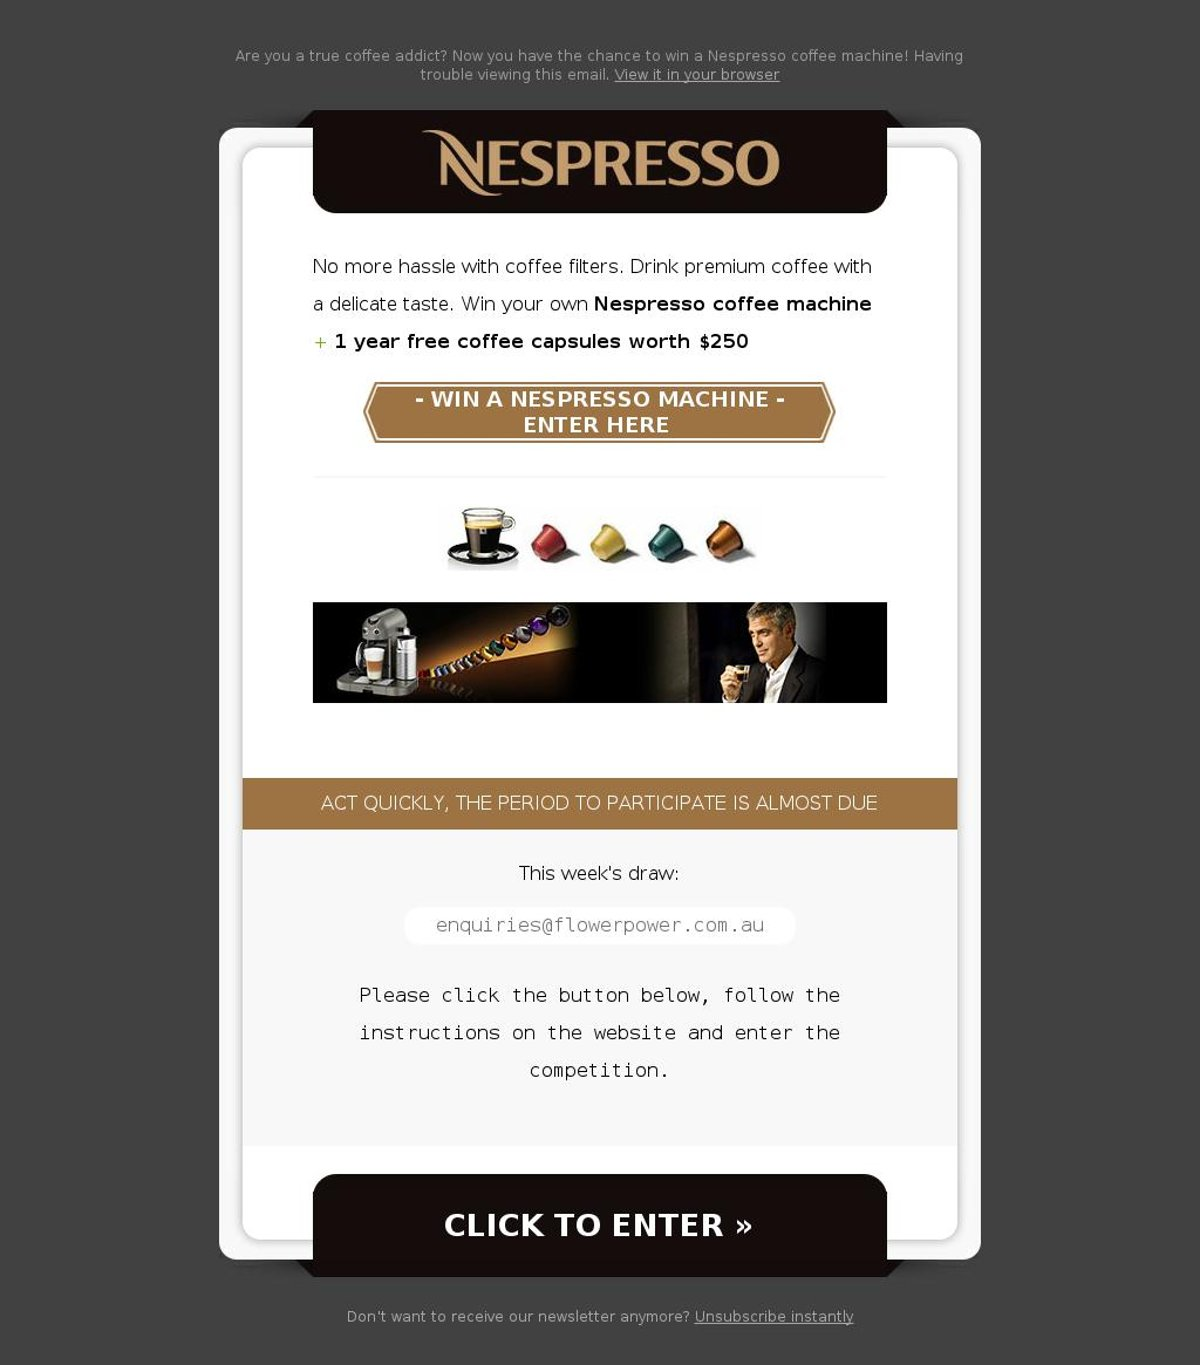 MailShark Win your own Nespresso coffee machine Visit Website